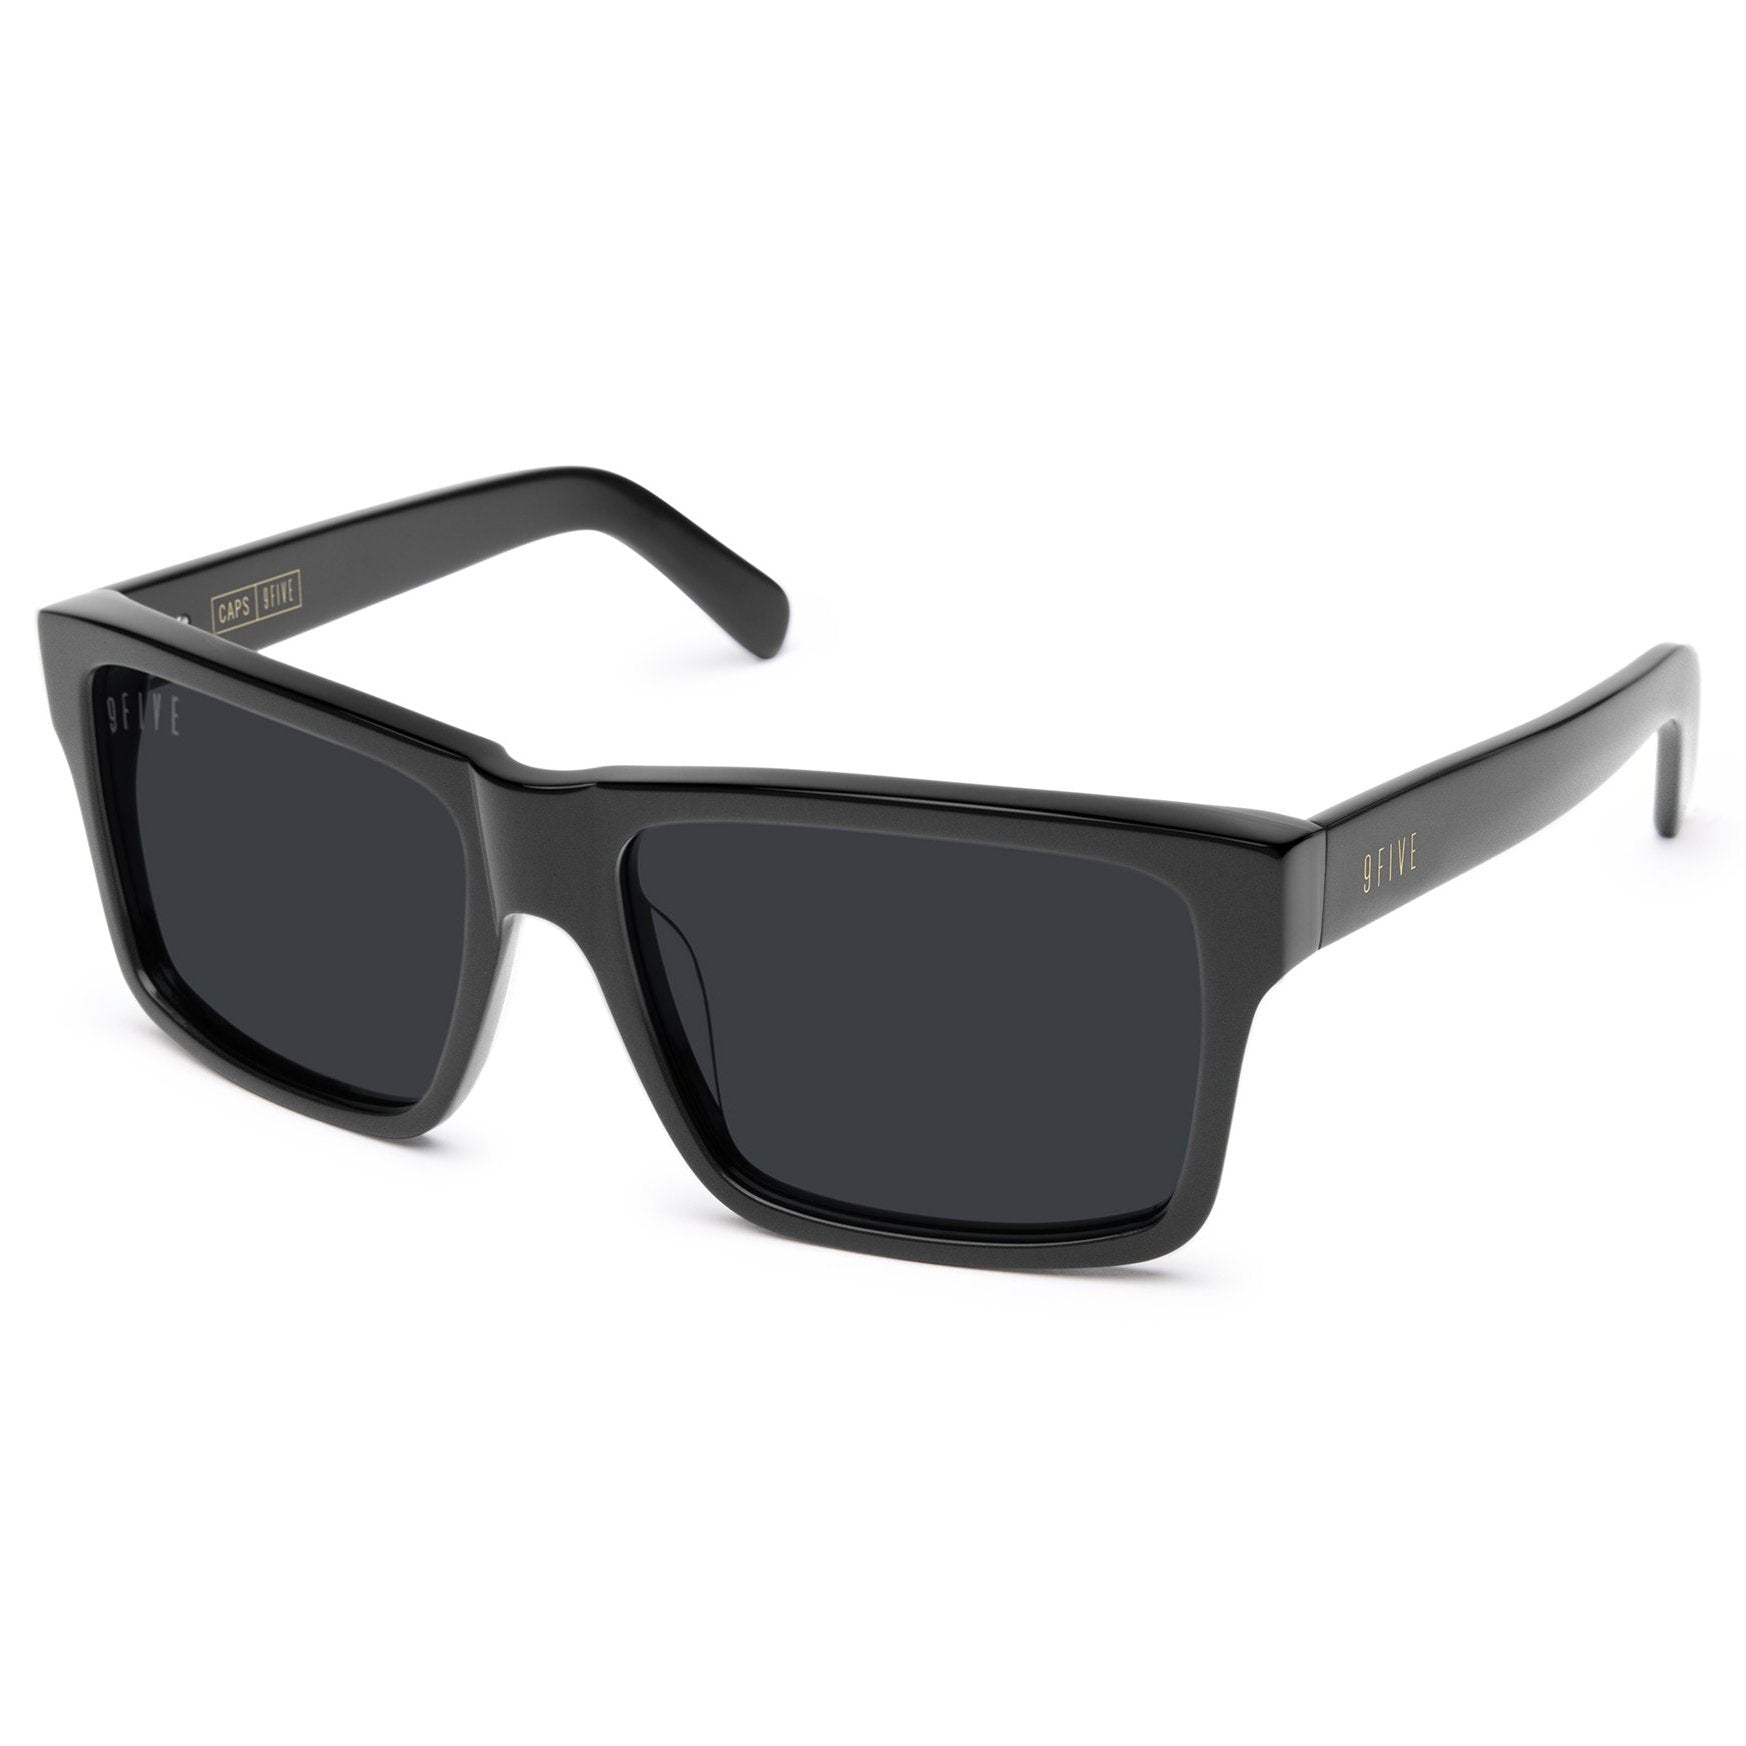 9 Five Caps Sunglasses - Matte Black Product Photo #1